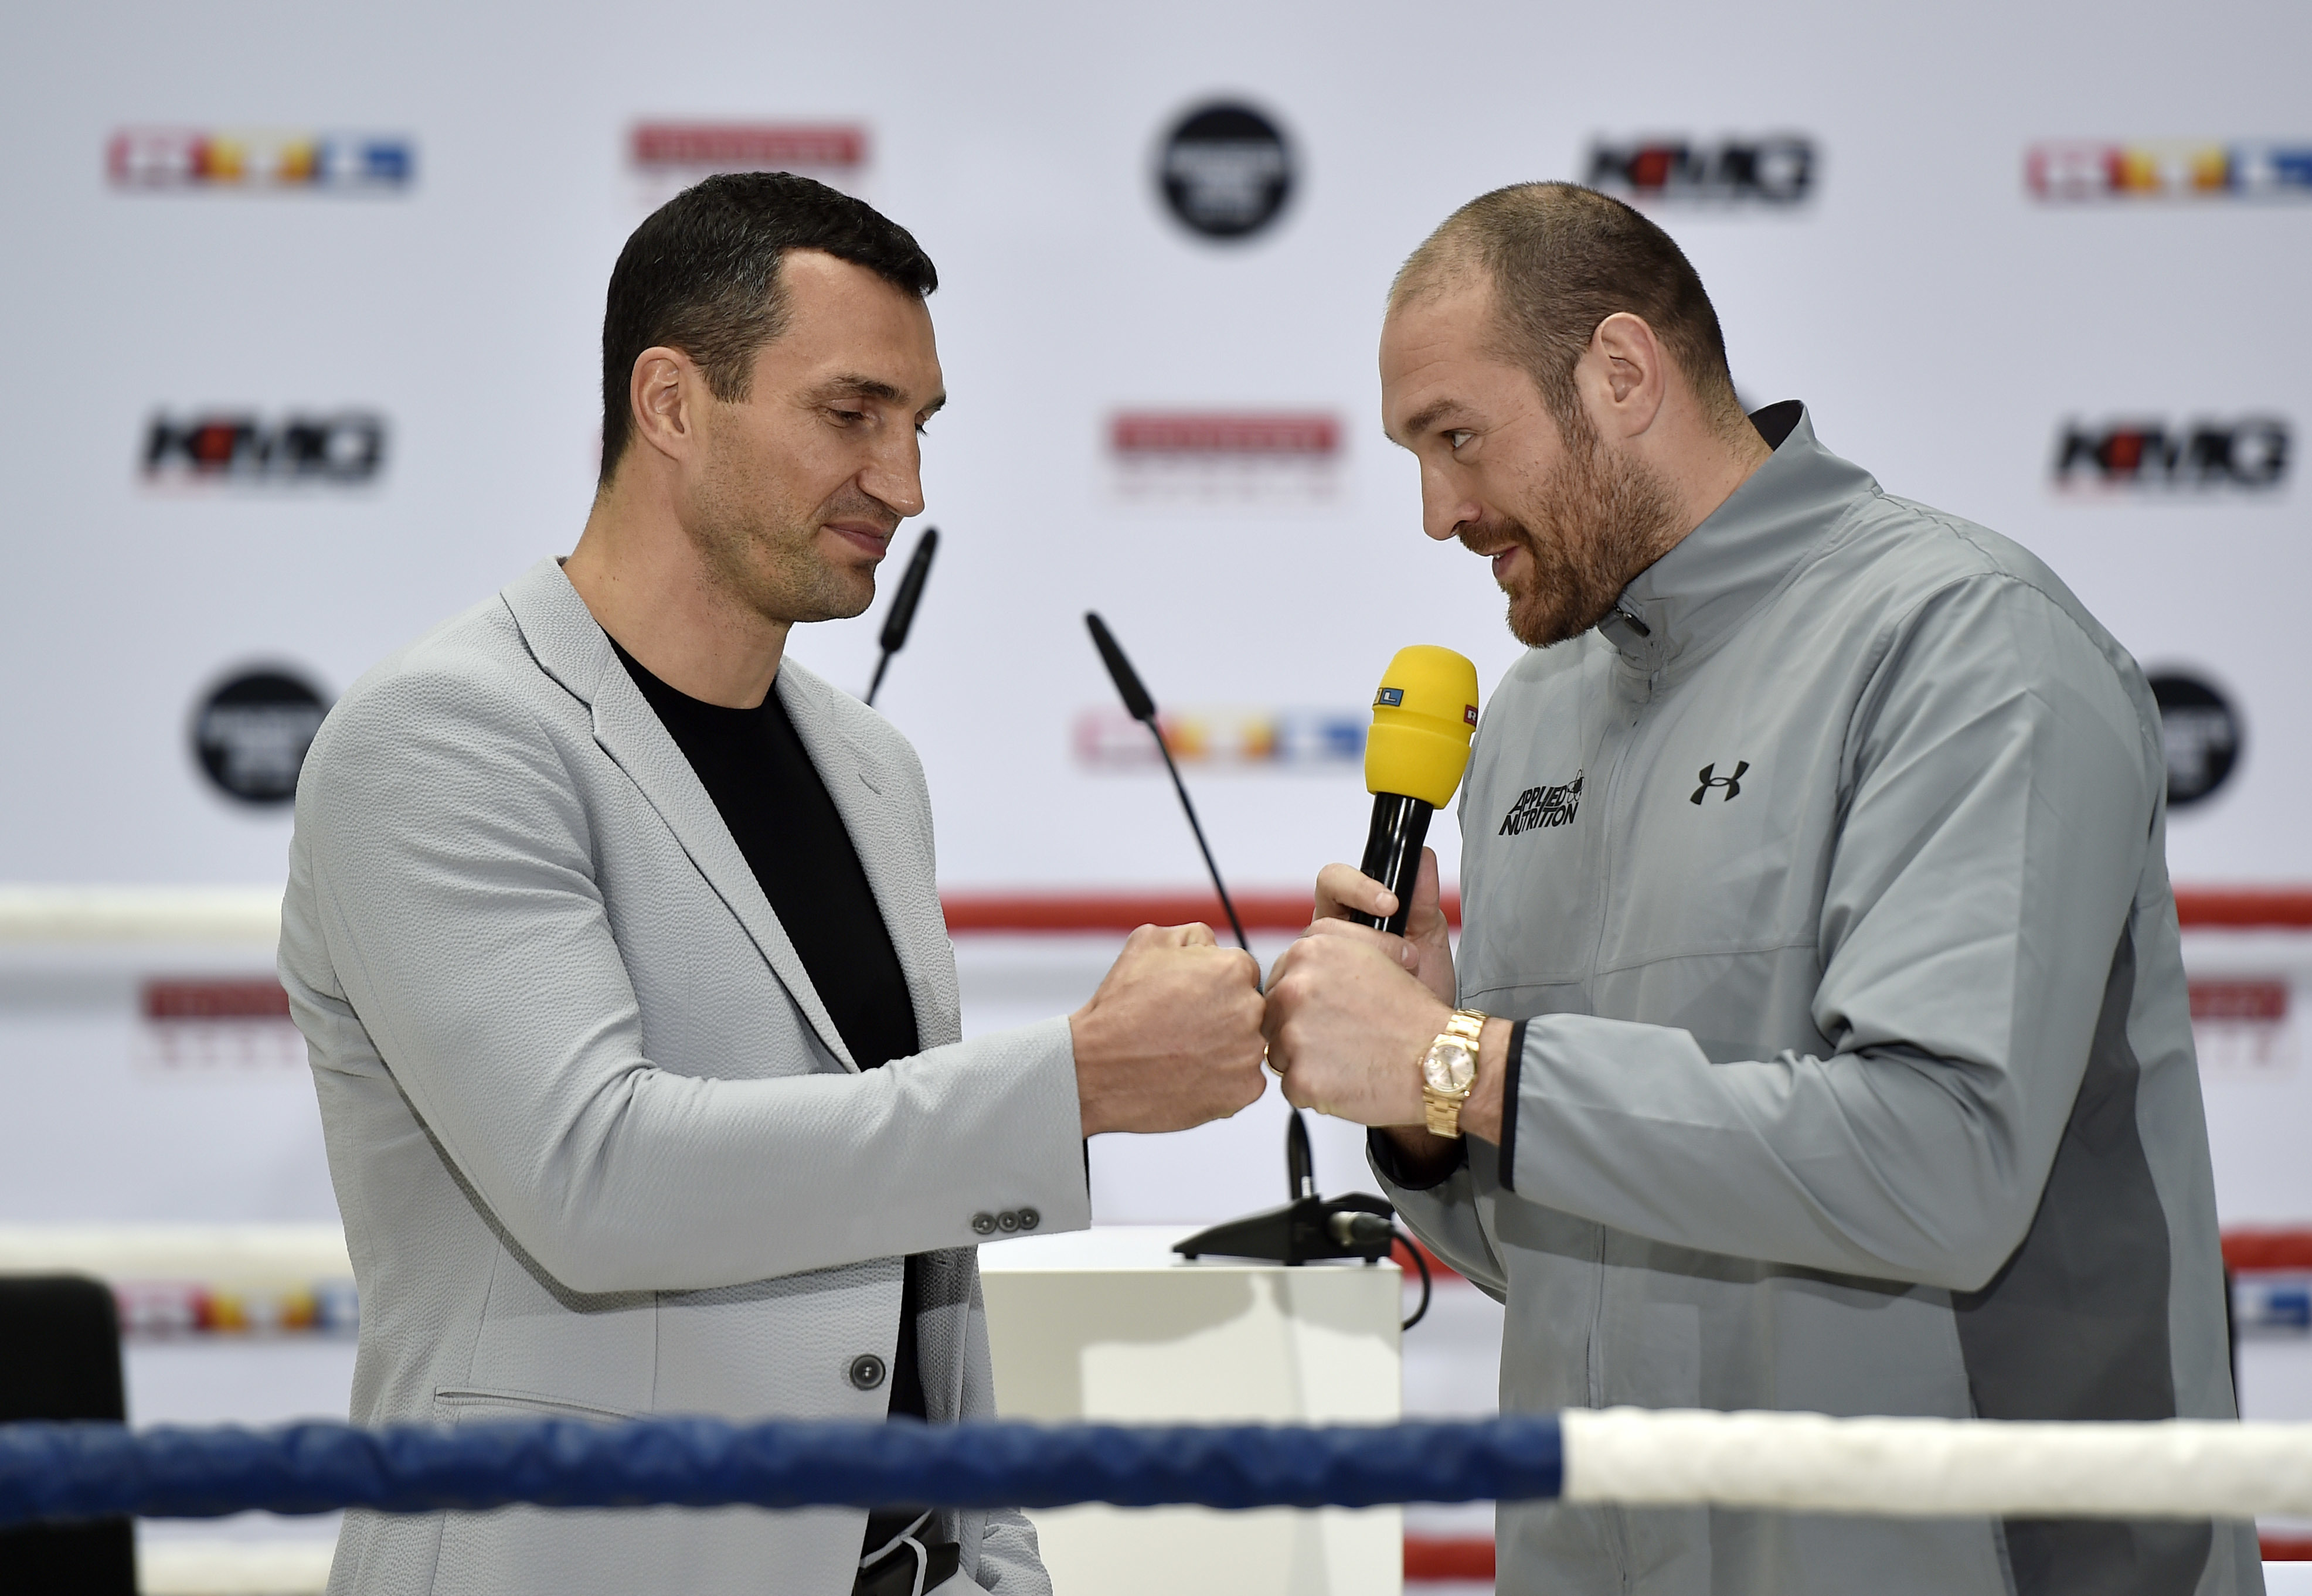 Tyson Furys Reason For Cancelling Klitschko Fight Brings Worst Out Of People PA 26185679